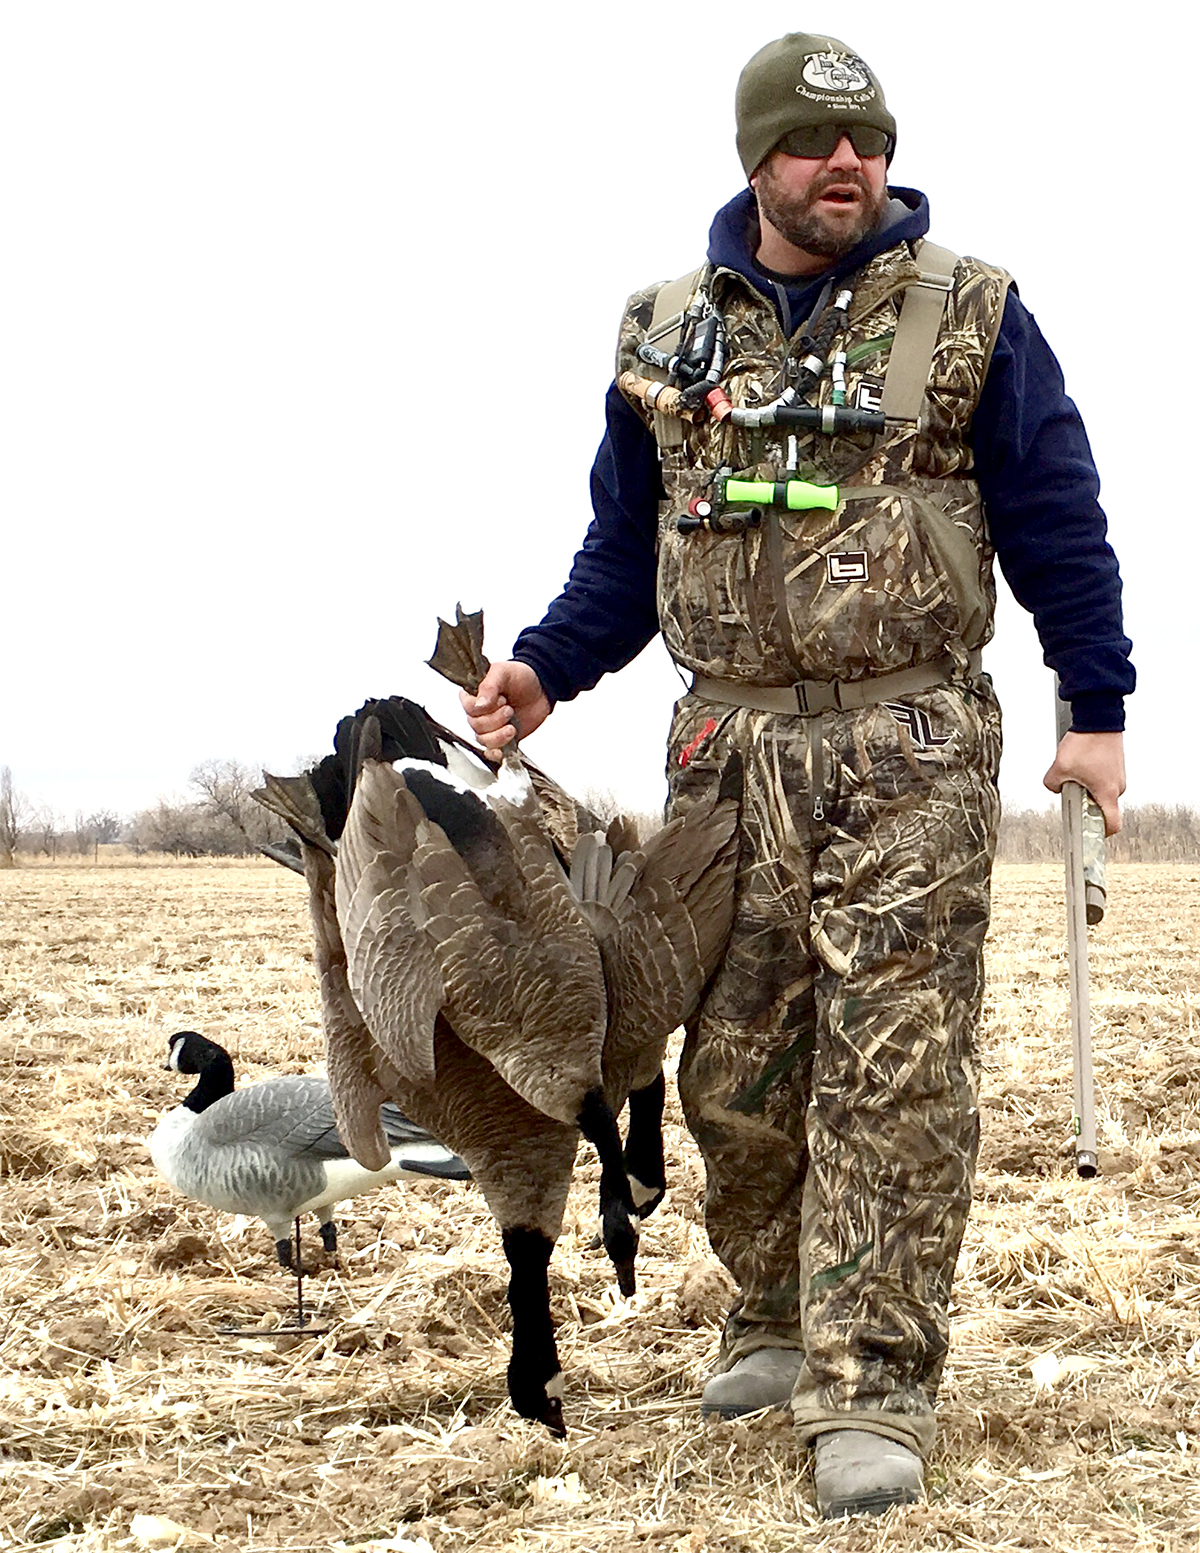 Preparing harvested geese for the table is just as enjoyable as hunting them. Photo © Chad Belding